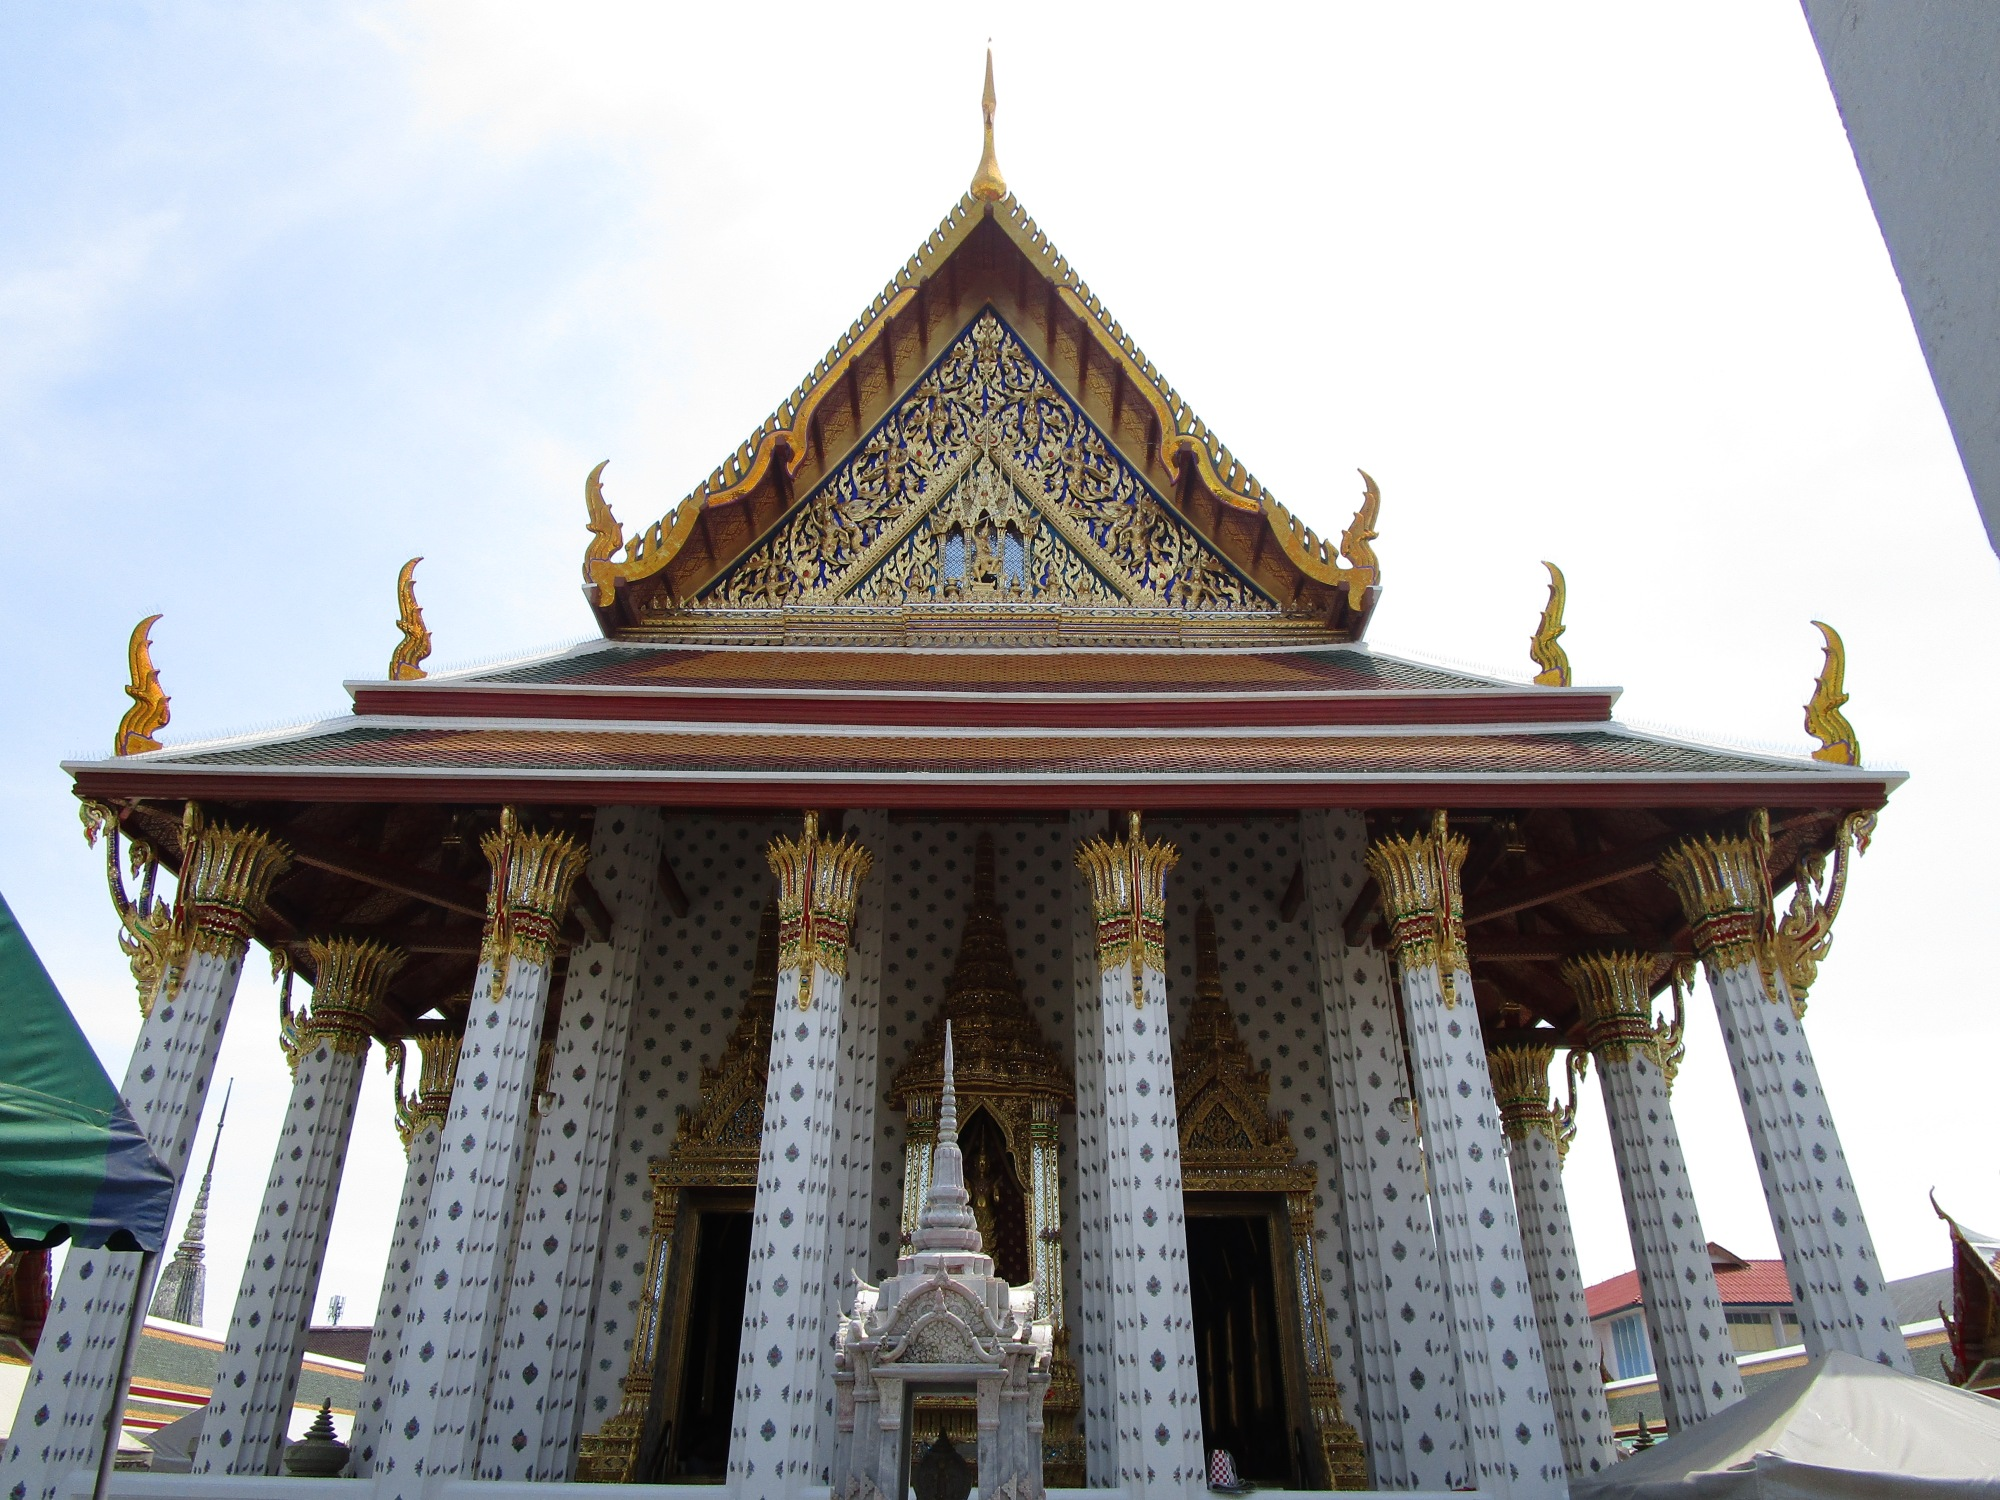 Temple front with beautiful details and carefully designed pillars and roof